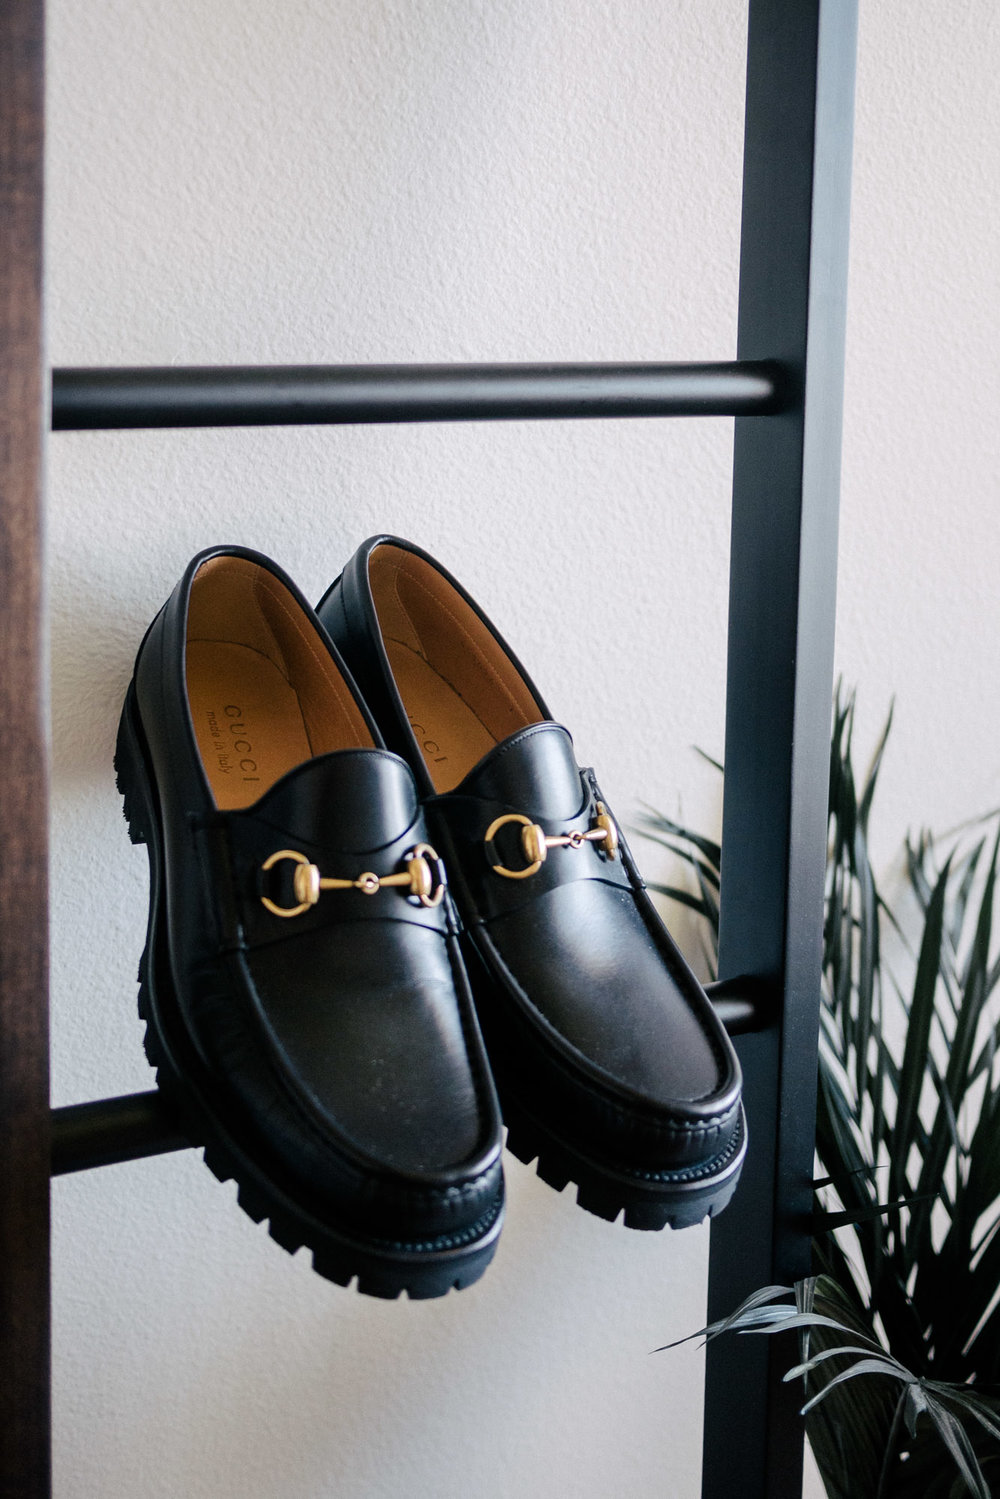 mybelonging-gucci-horsebit-black-loafers-menswear-mens-shoes-luxury-designer-1.jpg